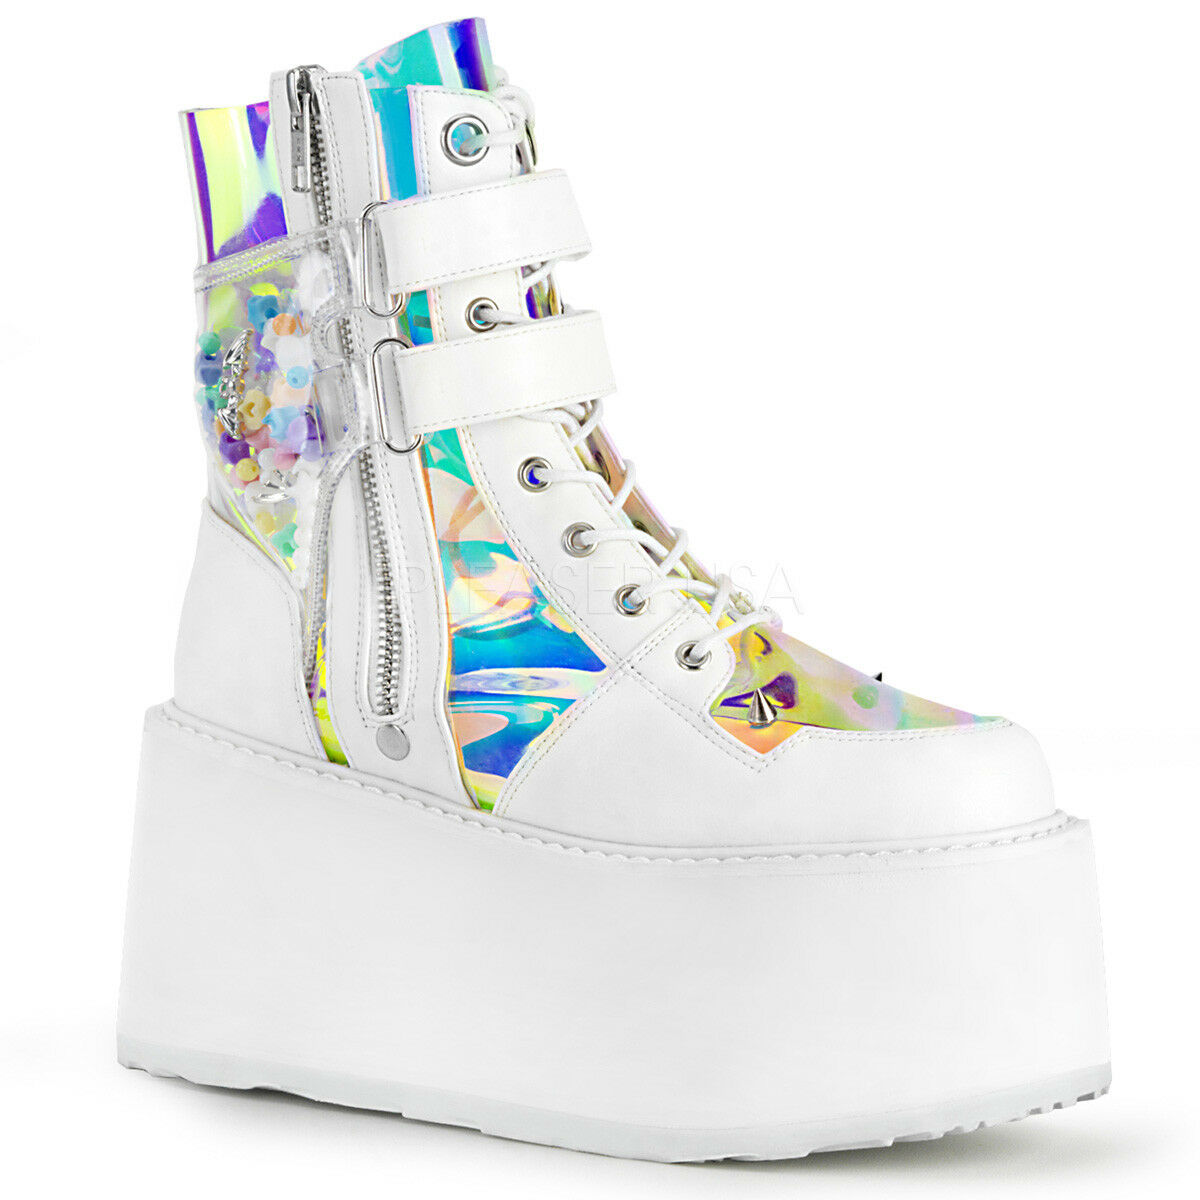 WEISS Womans Clear Platform Demonia Burning Man Raver Goth Punk Womans WEISS Schuhes Stiefel 9 10 f7e5ea